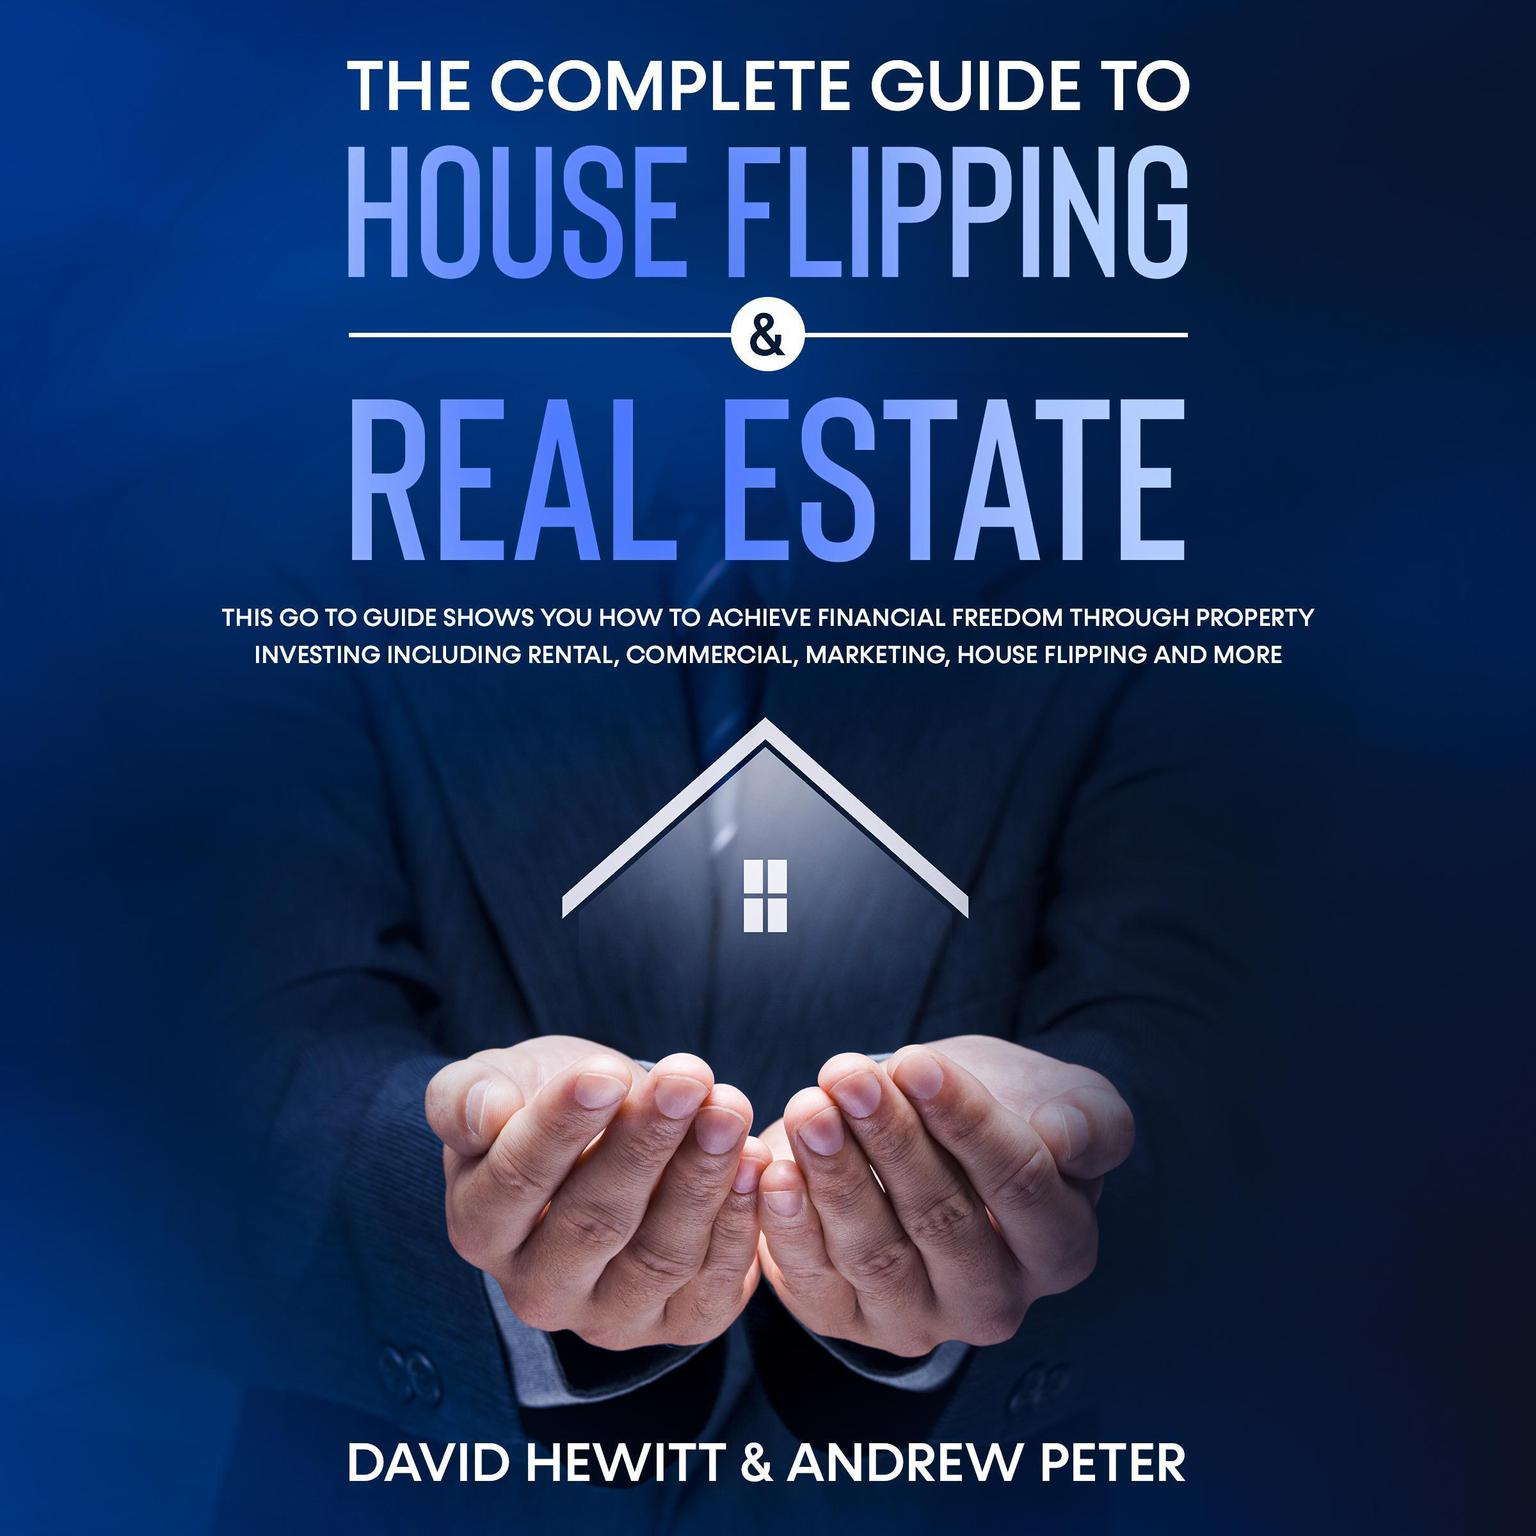 The complete Guide to House Flipping & Real Estate: This go to guide shows you how to achieve financial freedom through property investing including rental, commercial, marketing, house flipping and more Audiobook, by Andrew Peter